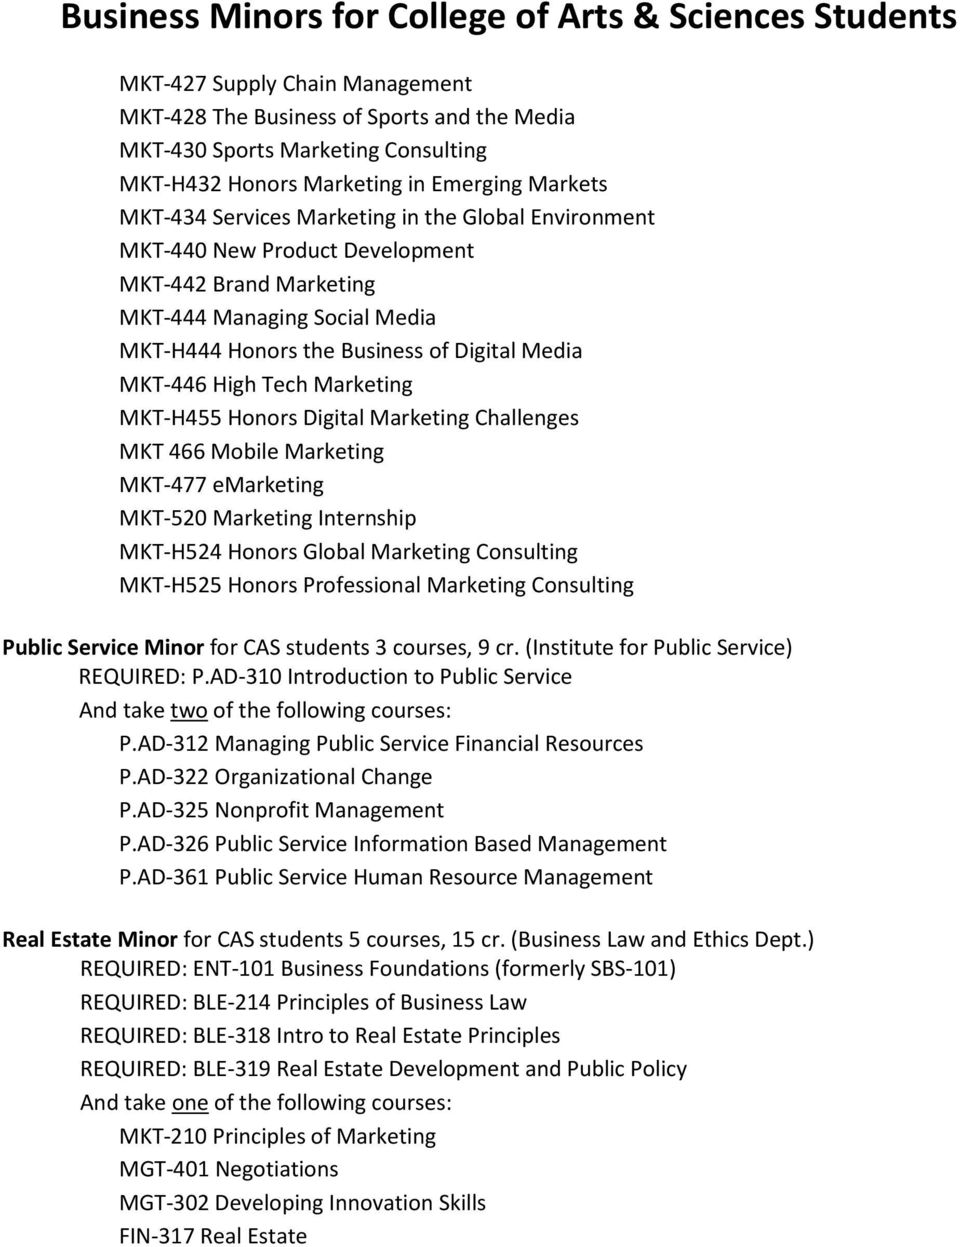 Marketing Challenges MKT 466 Mobile Marketing MKT-477 emarketing MKT-520 Marketing Internship MKT-H524 Honors Global Marketing Consulting MKT-H525 Honors Professional Marketing Consulting Public